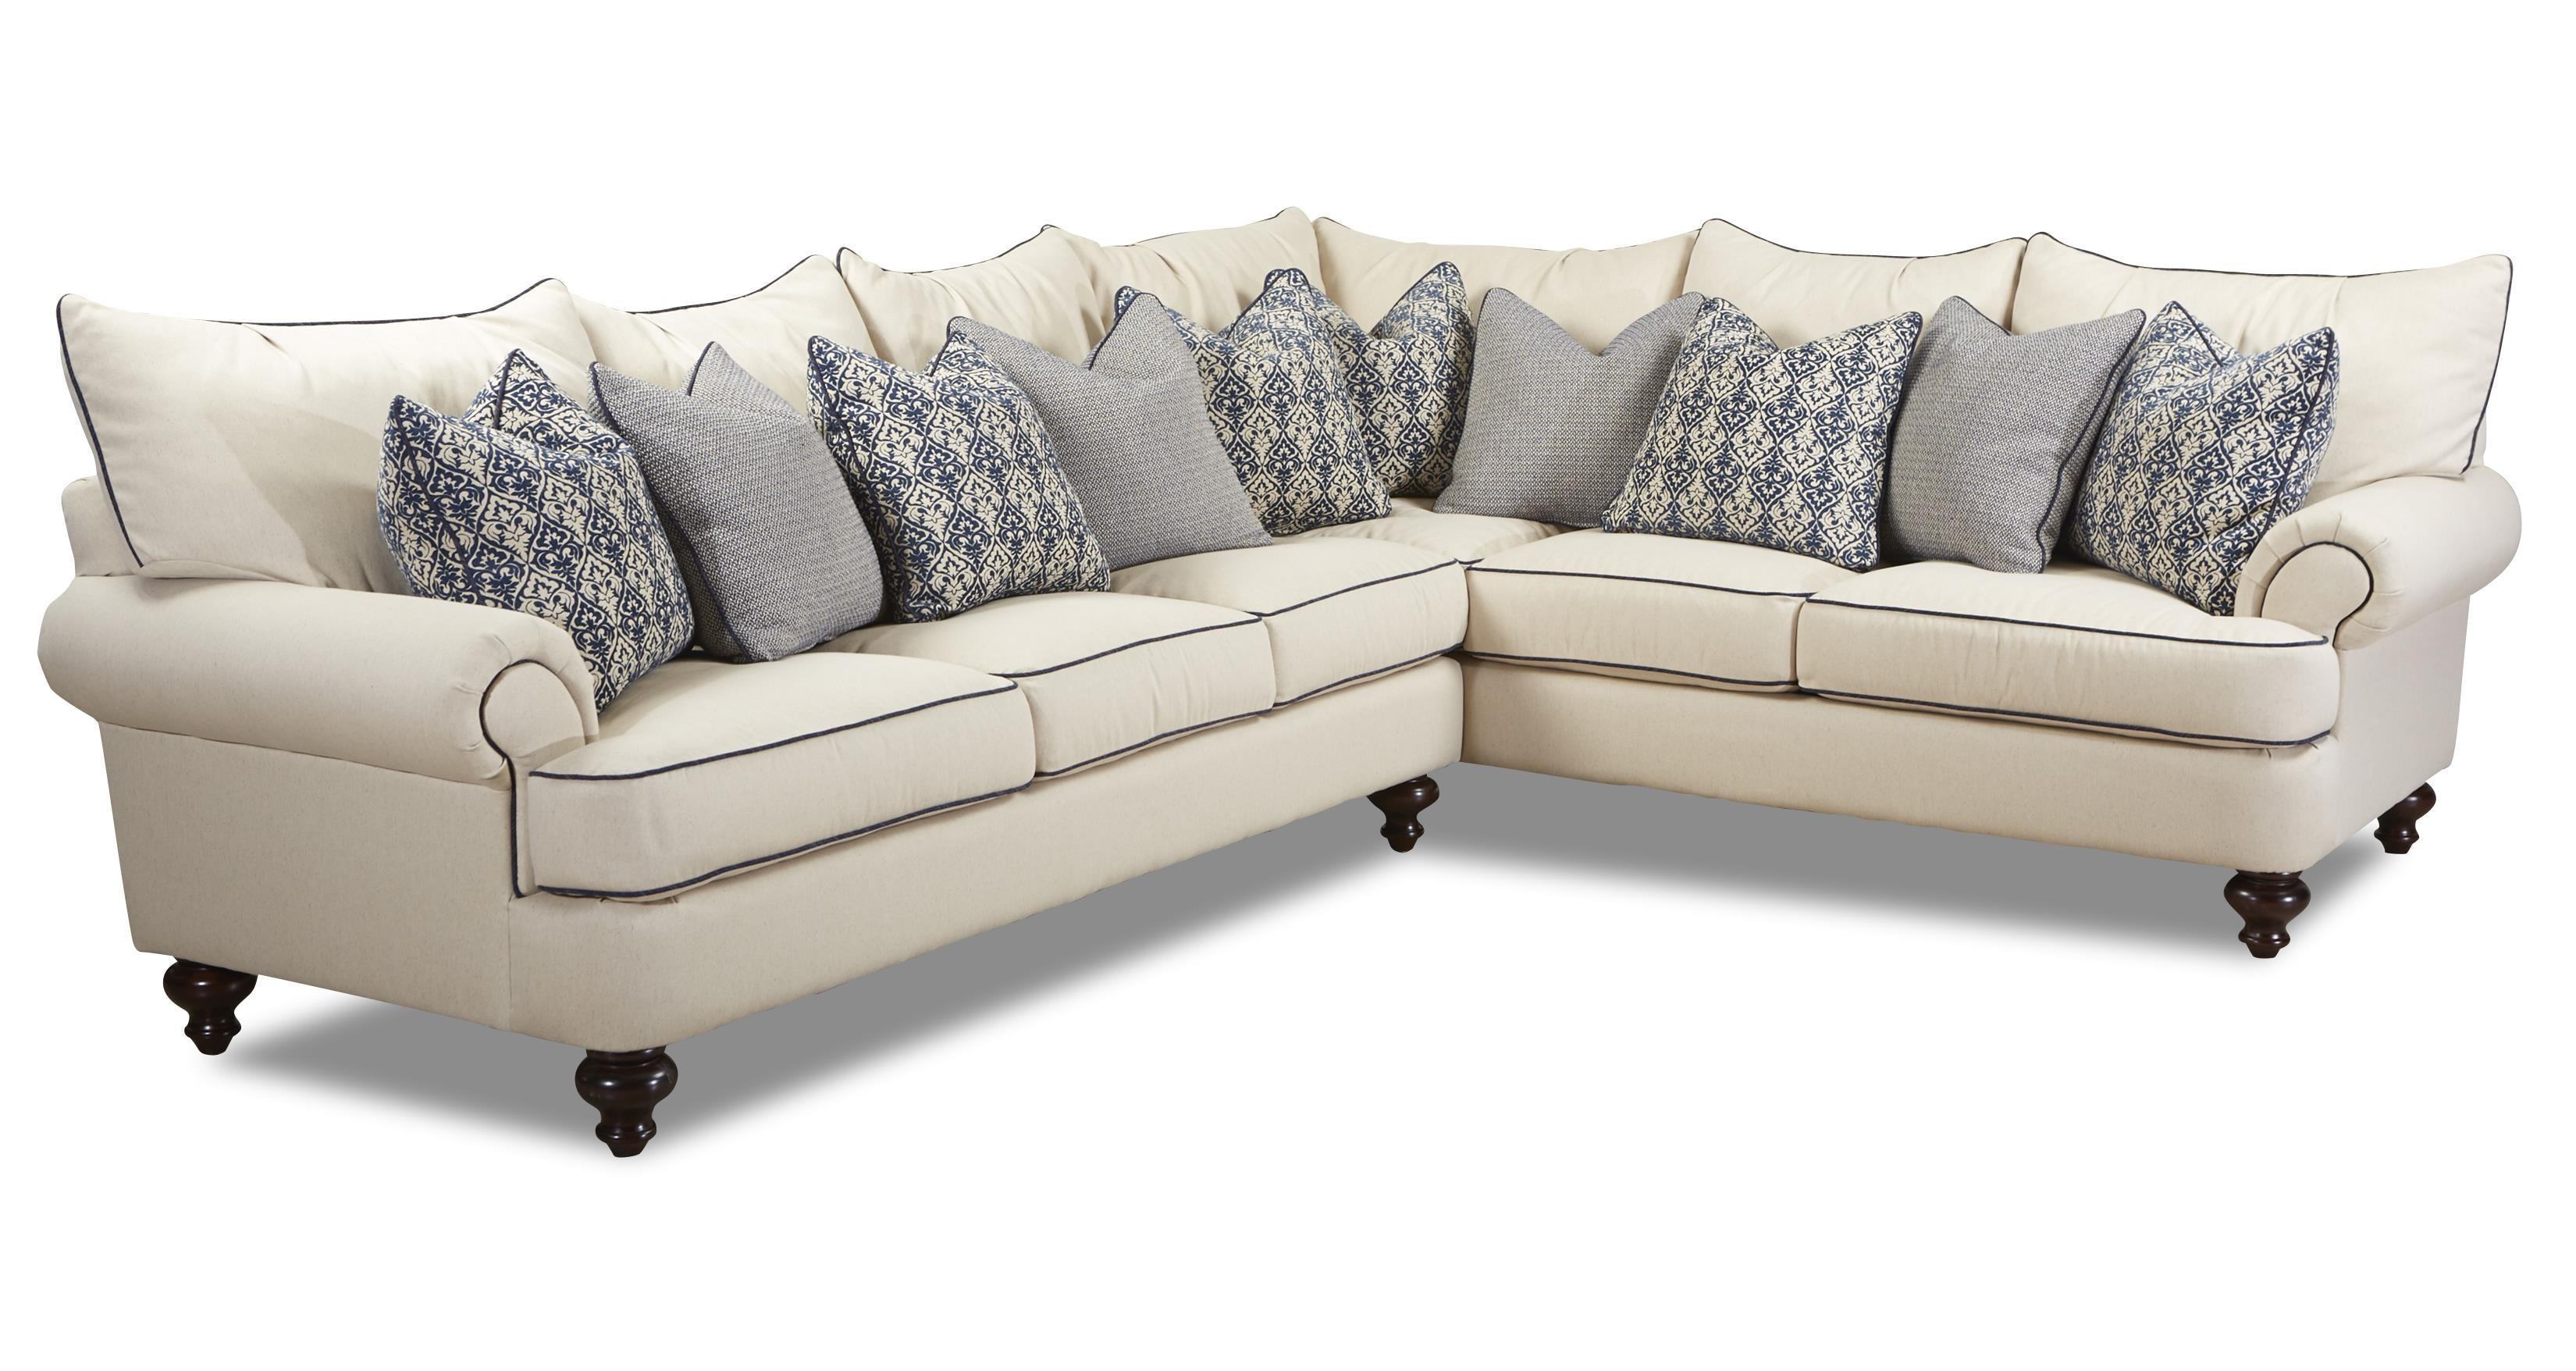 Klaussner Ashworth Shabby Chic Sectional Sofa – Dunk & Bright With Regard To Shabby Chic Sectional Sofas Couches (Image 7 of 21)